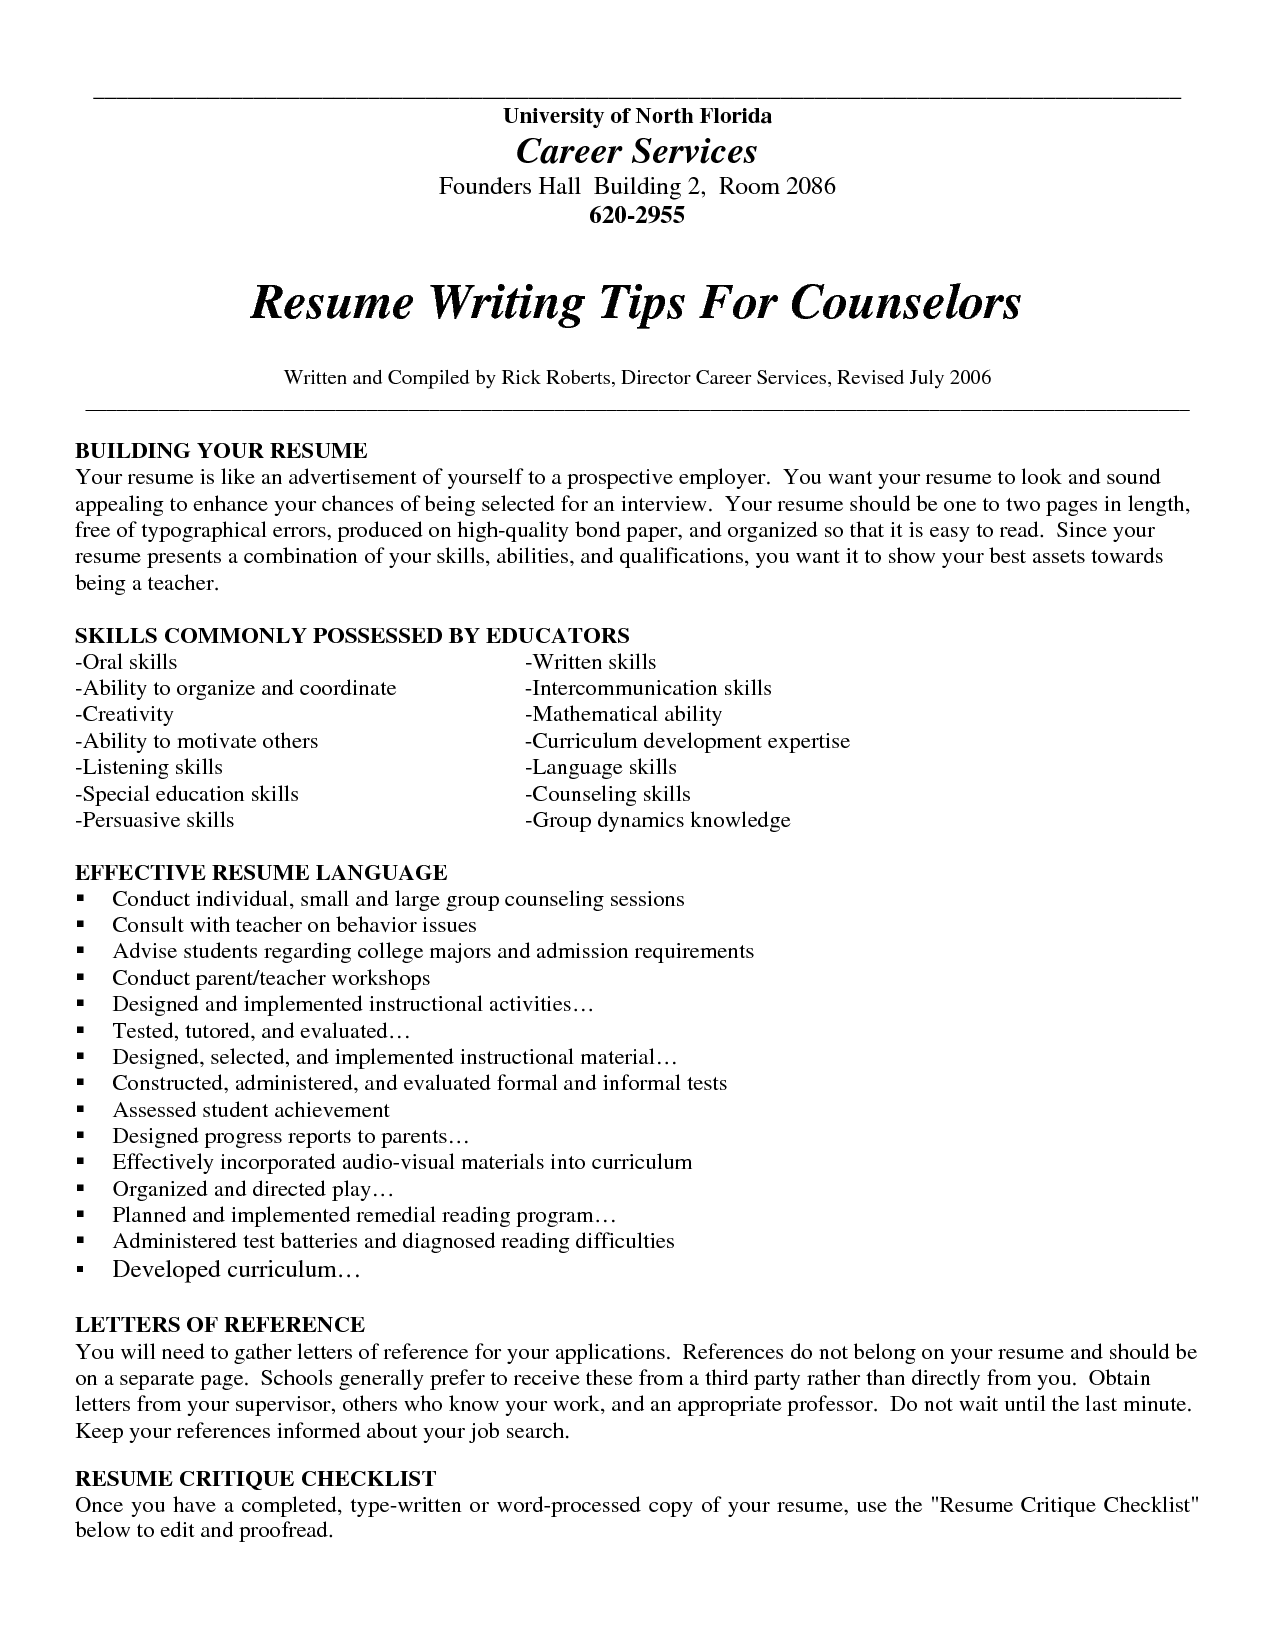 Examples Of Cover Letters Generally Resume Writing Examples Sample Resumes Freewriting A Resume Cover